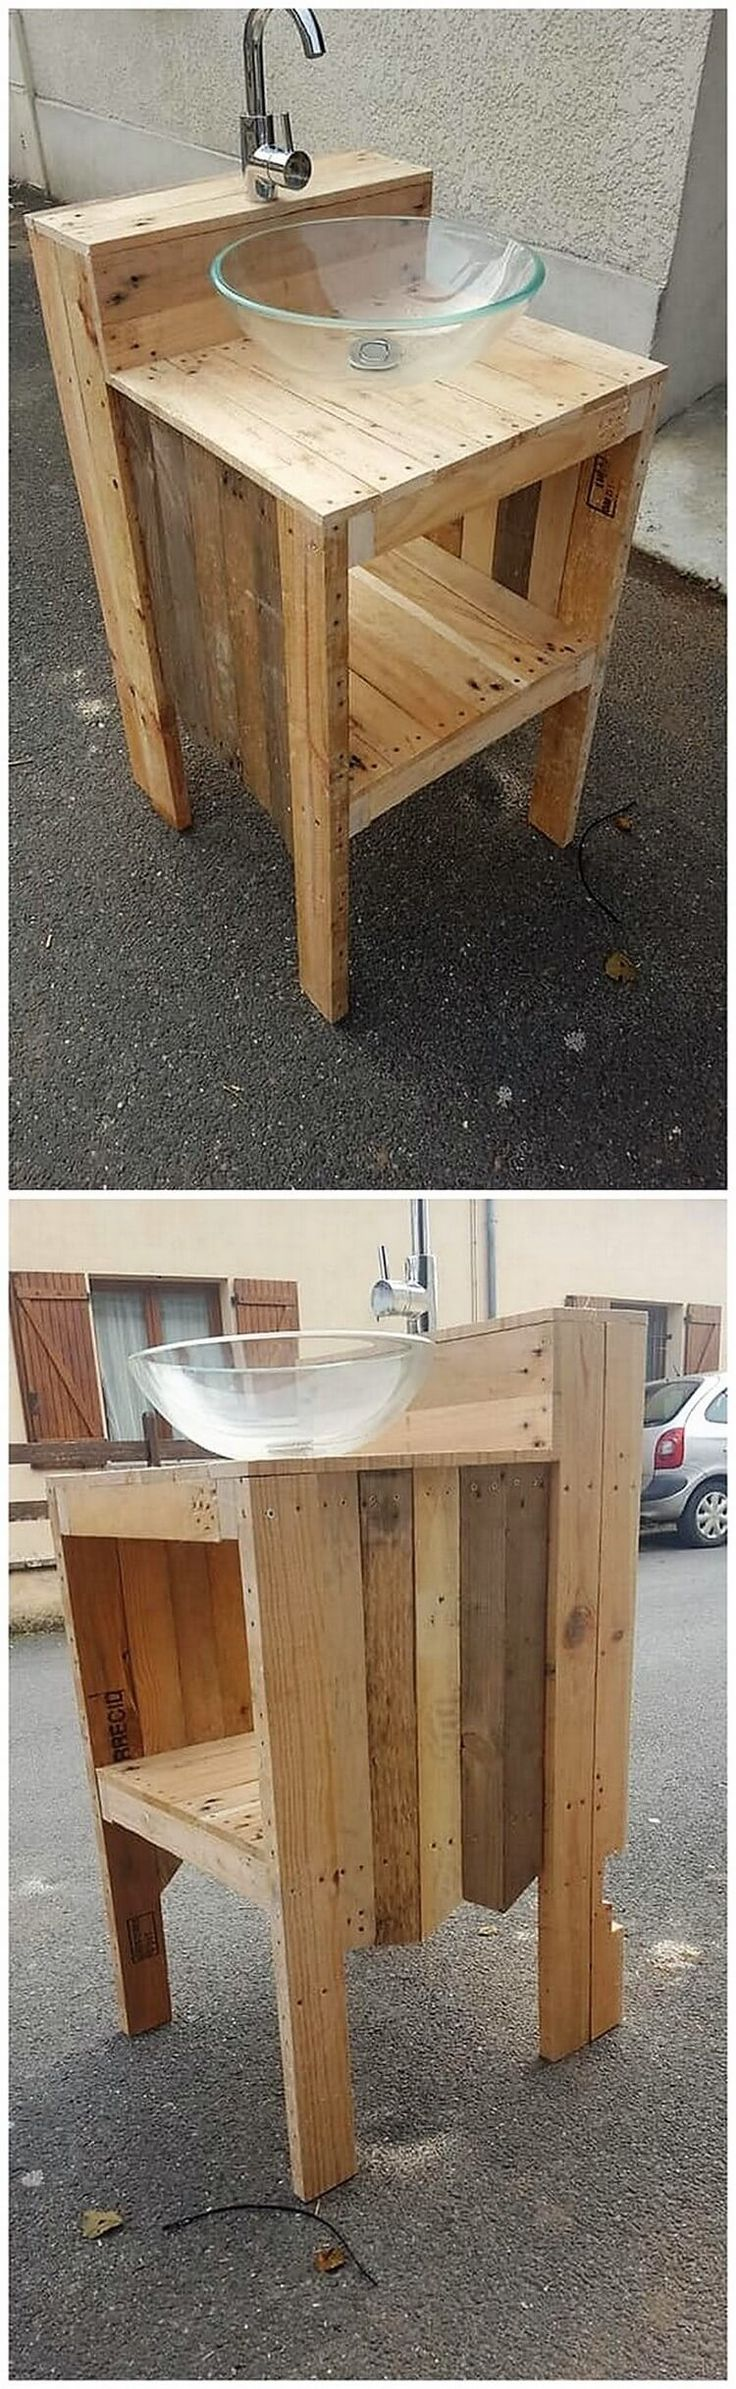 Majestic and such an innovative creation of the wood pallet sink has been  set out in